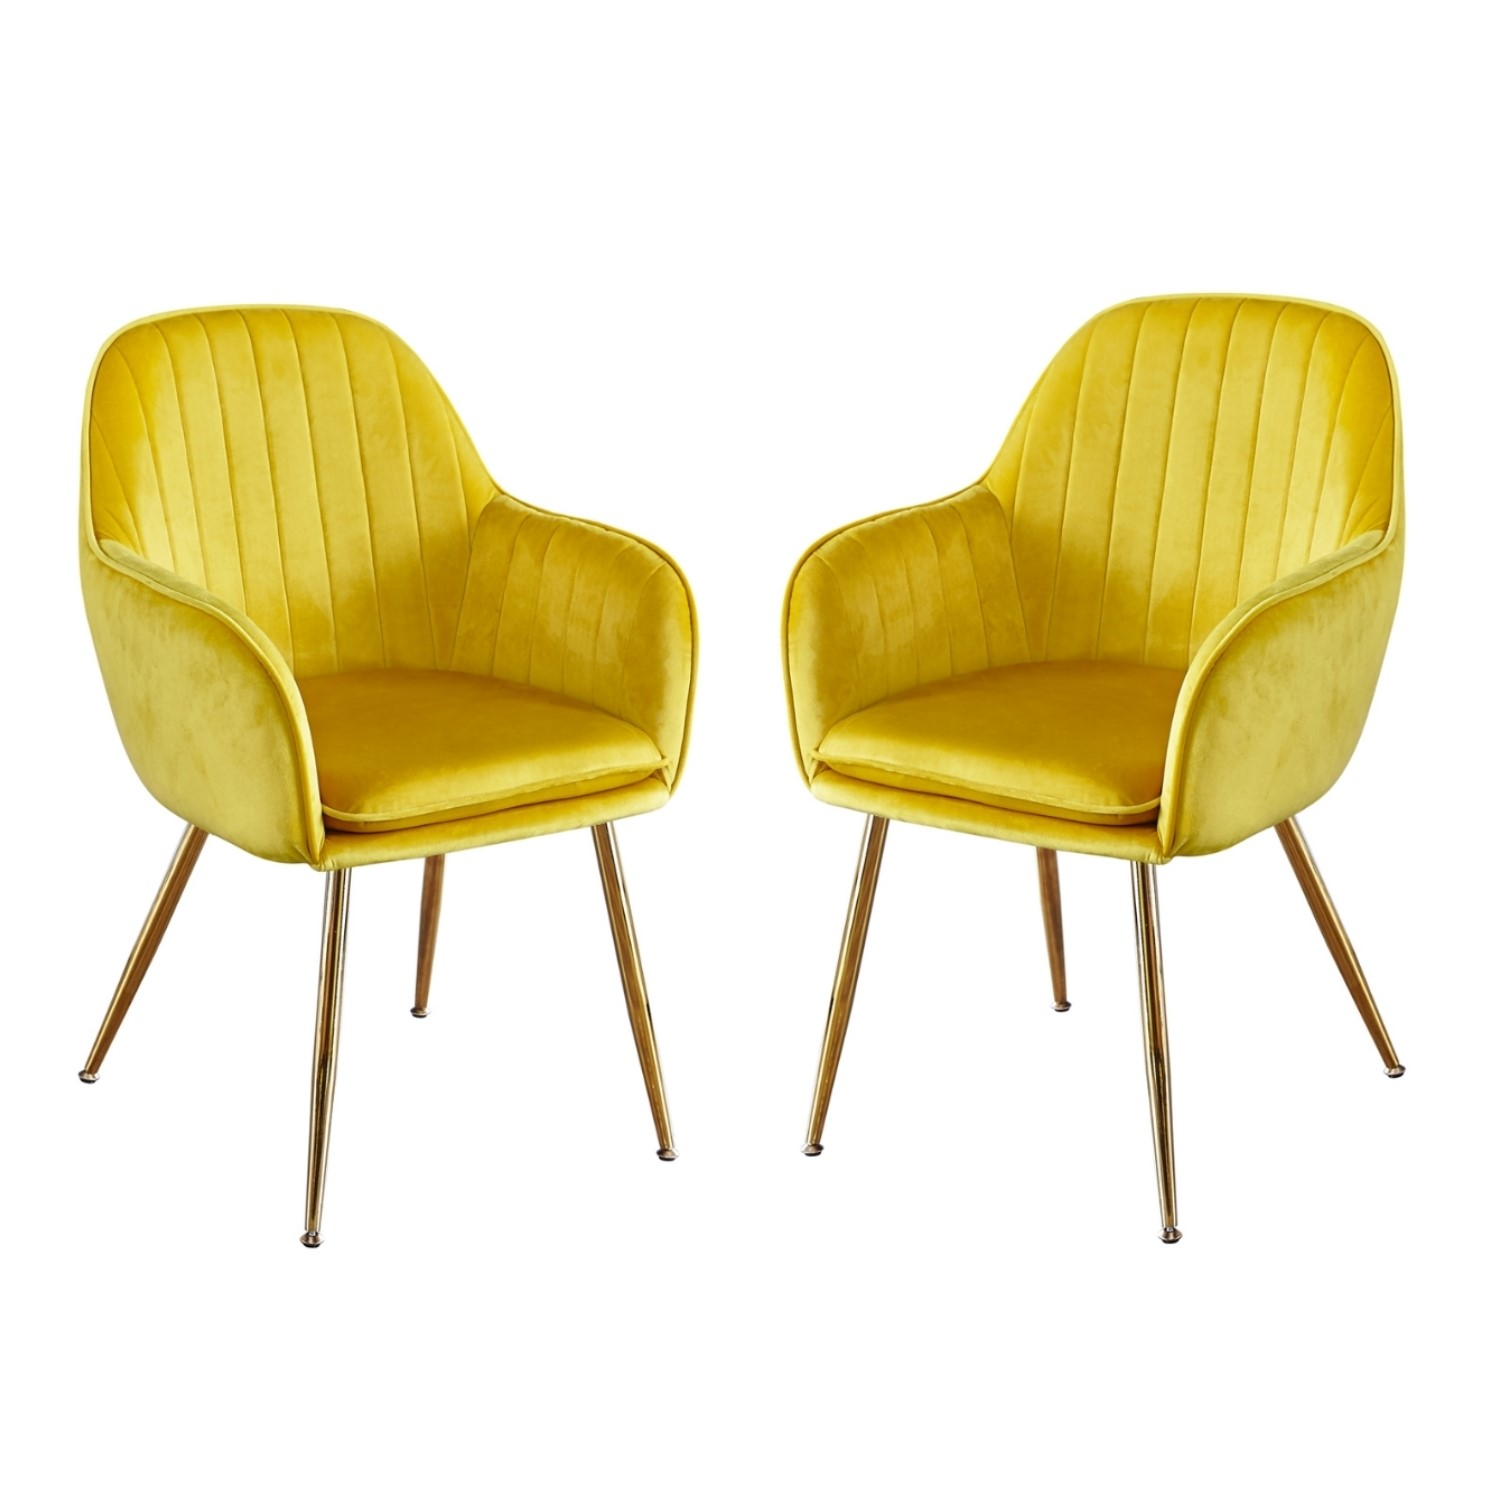 Picture of: Set Of 2 Yellow Velvet Dining Chairs With Gold Legs Lara Furniture123